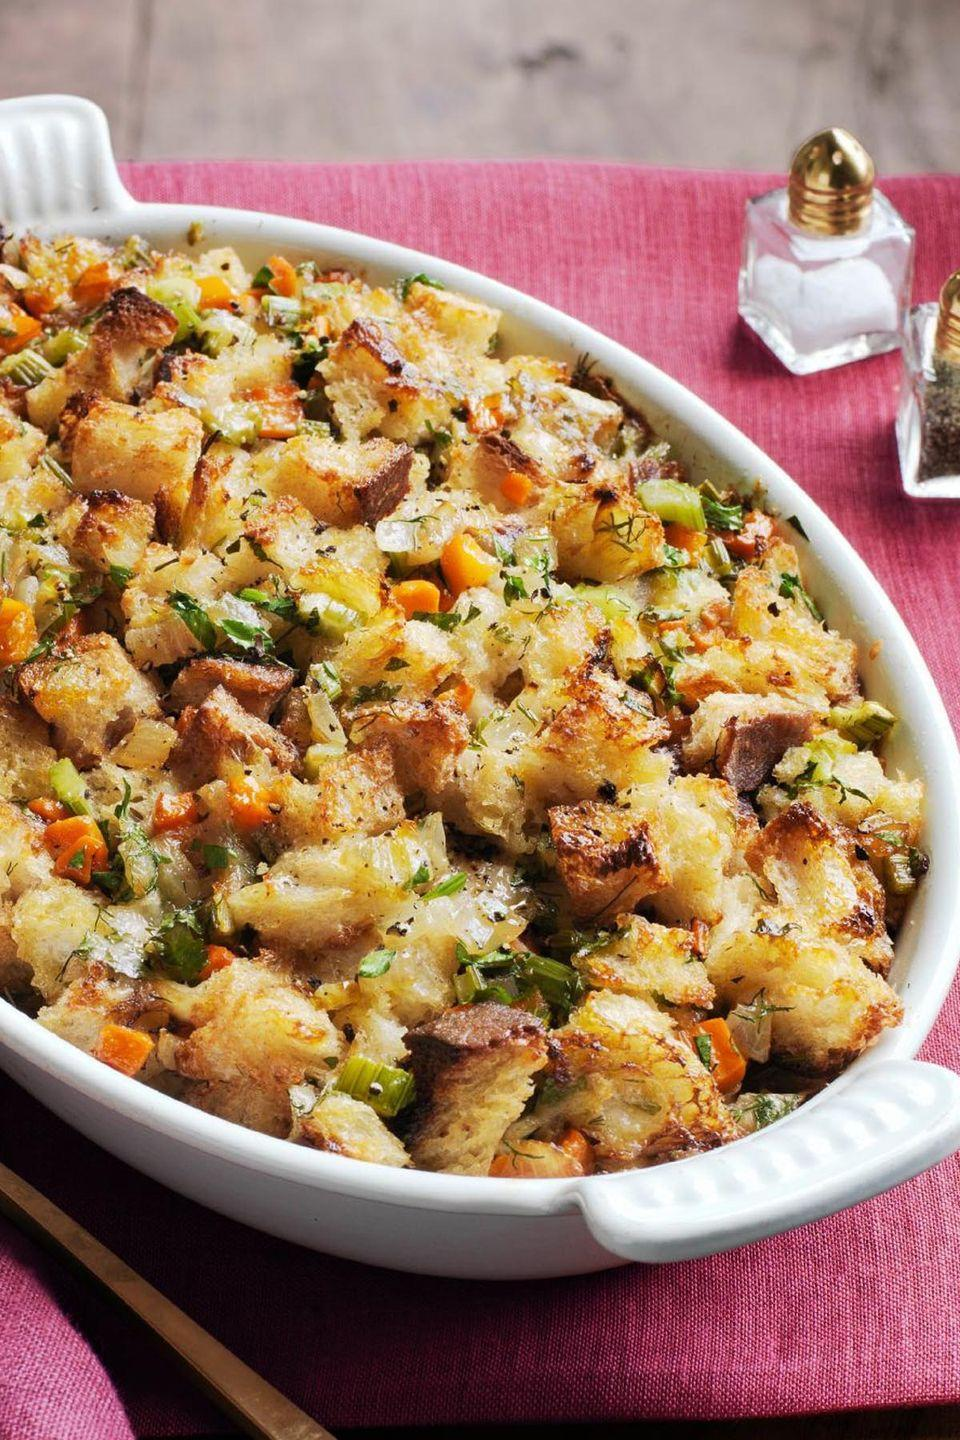 """<p>To make this savory stuffing up to one day ahead of time, prepare the ingredients but do not bake. Then, when you're ready to cook, bring the stuffing to room temperature and bake according to recipe instructions.</p><p><a href=""""https://www.womansday.com/food-recipes/food-drinks/recipes/a52075/cheddar-and-herb-stuffing/"""" rel=""""nofollow noopener"""" target=""""_blank"""" data-ylk=""""slk:Get the Cheddar and Herb Stuffing recipe."""" class=""""link rapid-noclick-resp""""><em><strong>Get the Cheddar and Herb Stuffing recipe.</strong></em></a> </p>"""